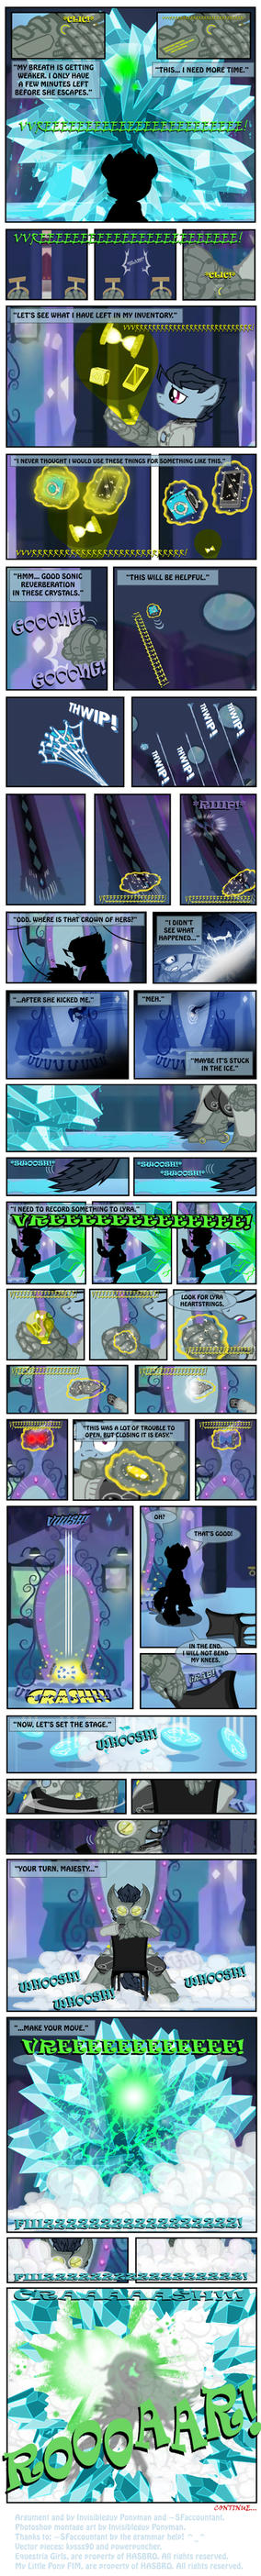 BY SKYWALKER'S HAND! (Part 34 of 35) by INVISIBLEGUY-PONYMAN